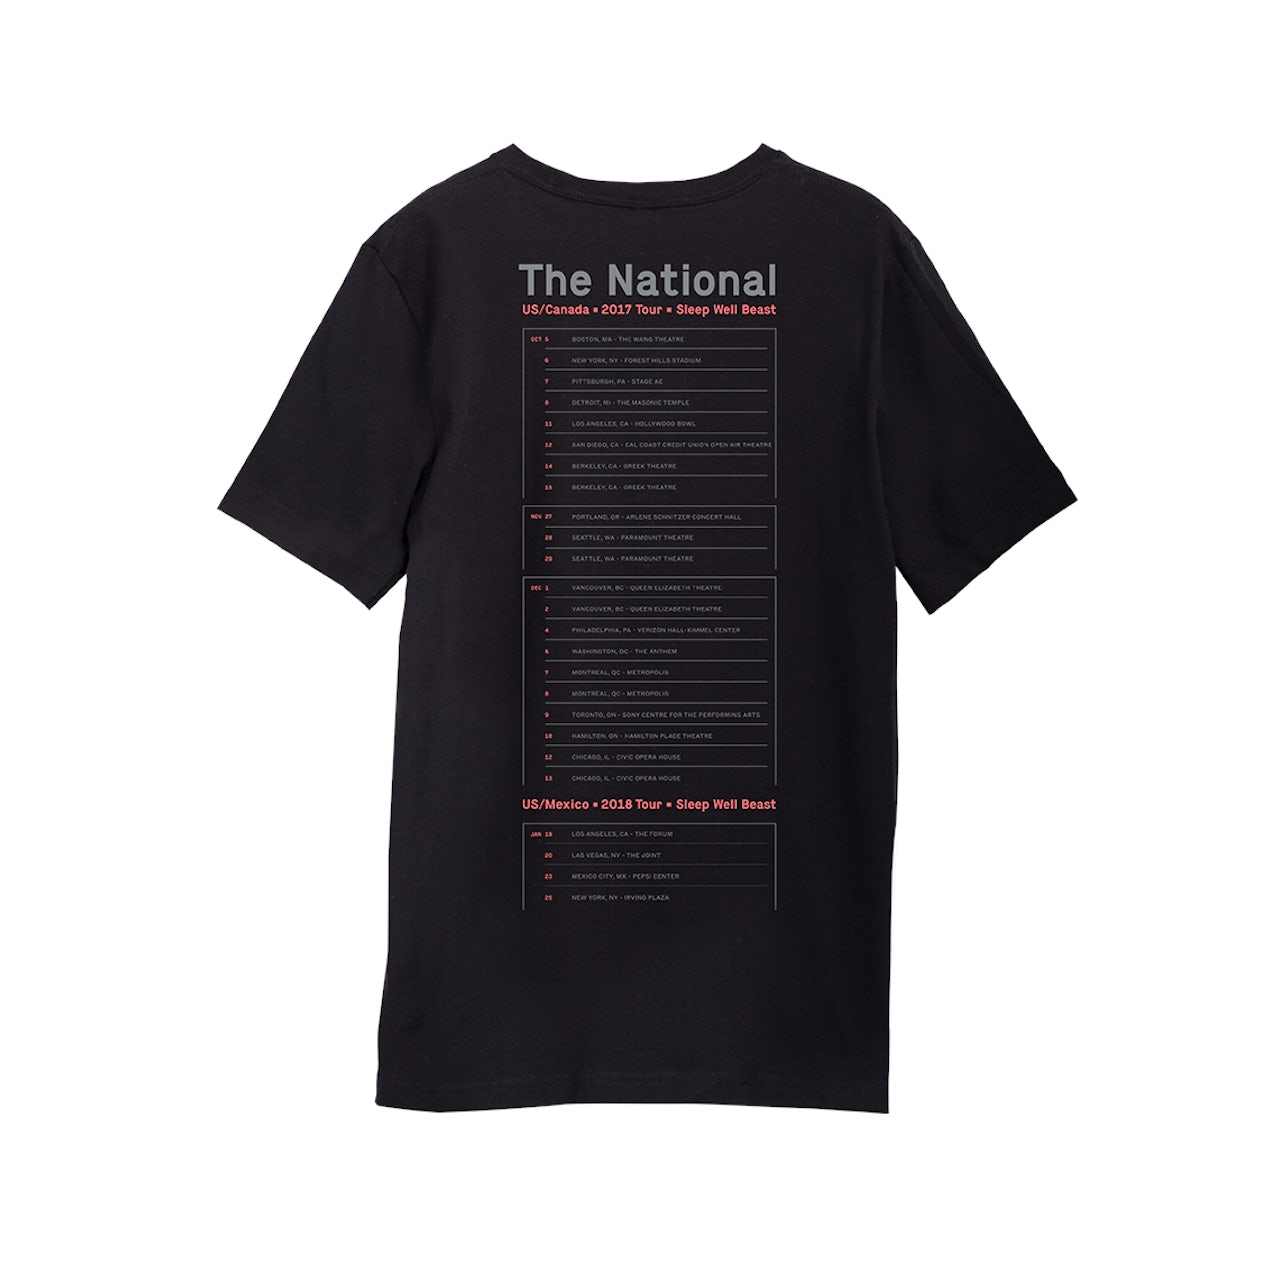 06d546f96fe The National North American Tour 2017 2018 T-Shirt. Touch to zoom